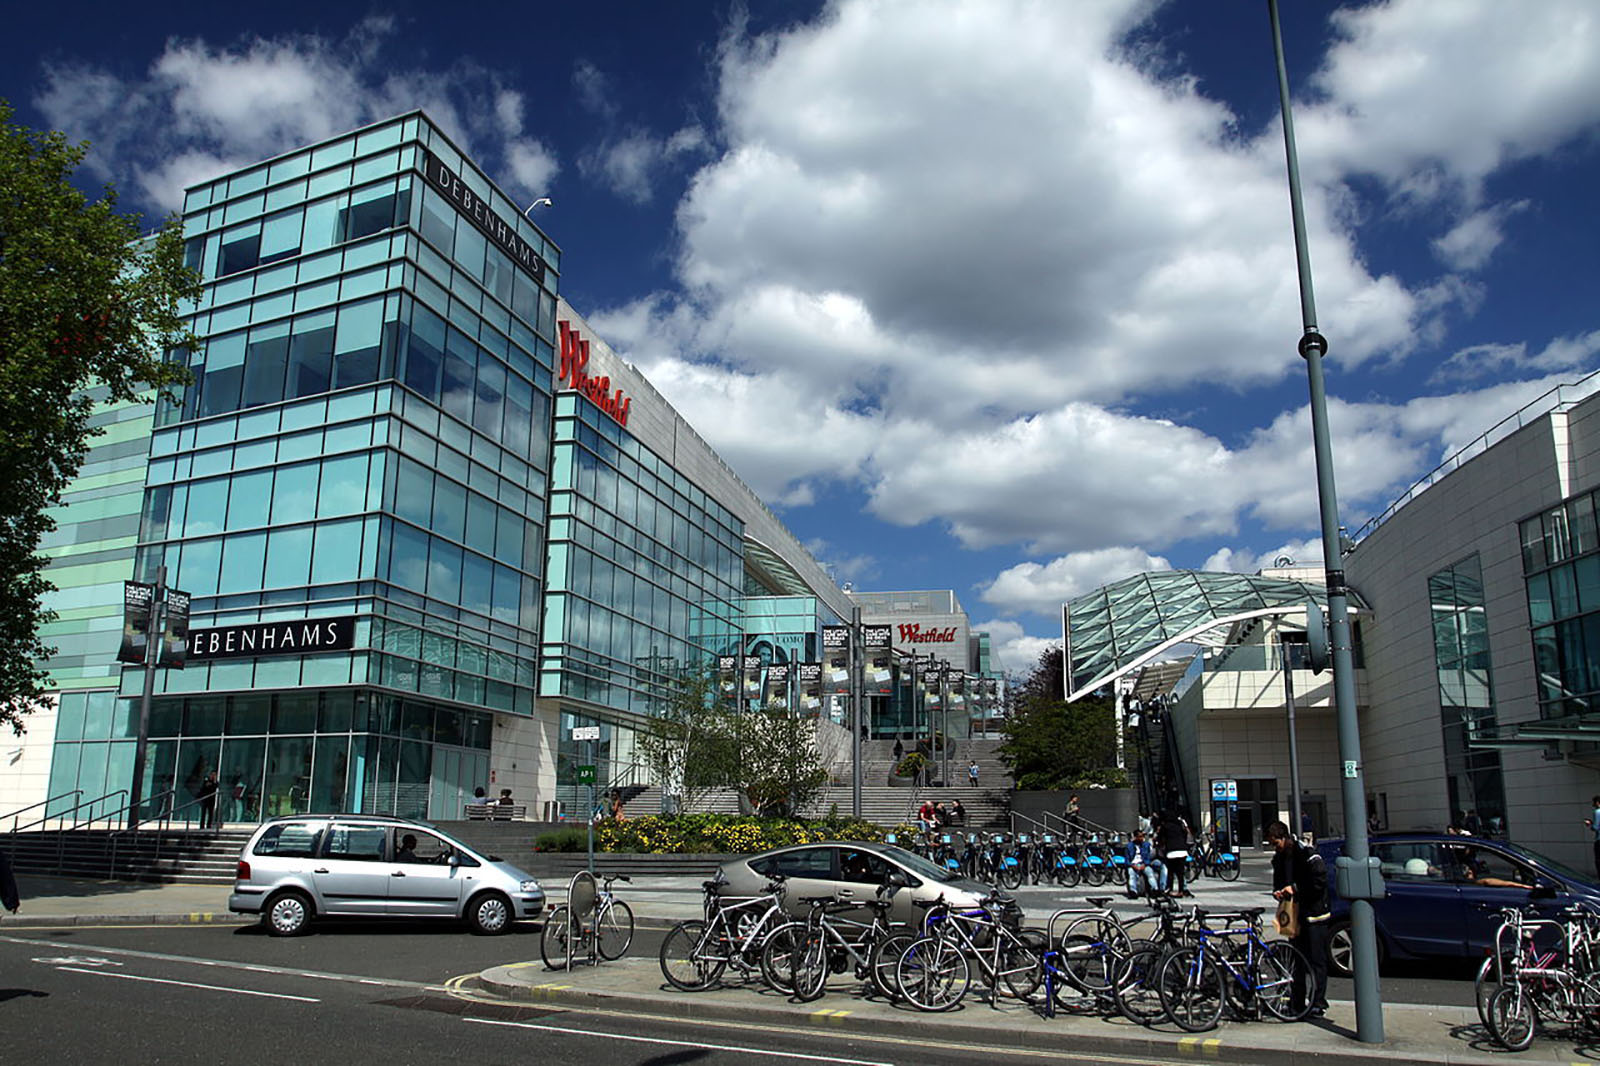 Westfield London shopping area in London Borough of Hammersmith and Fulham.